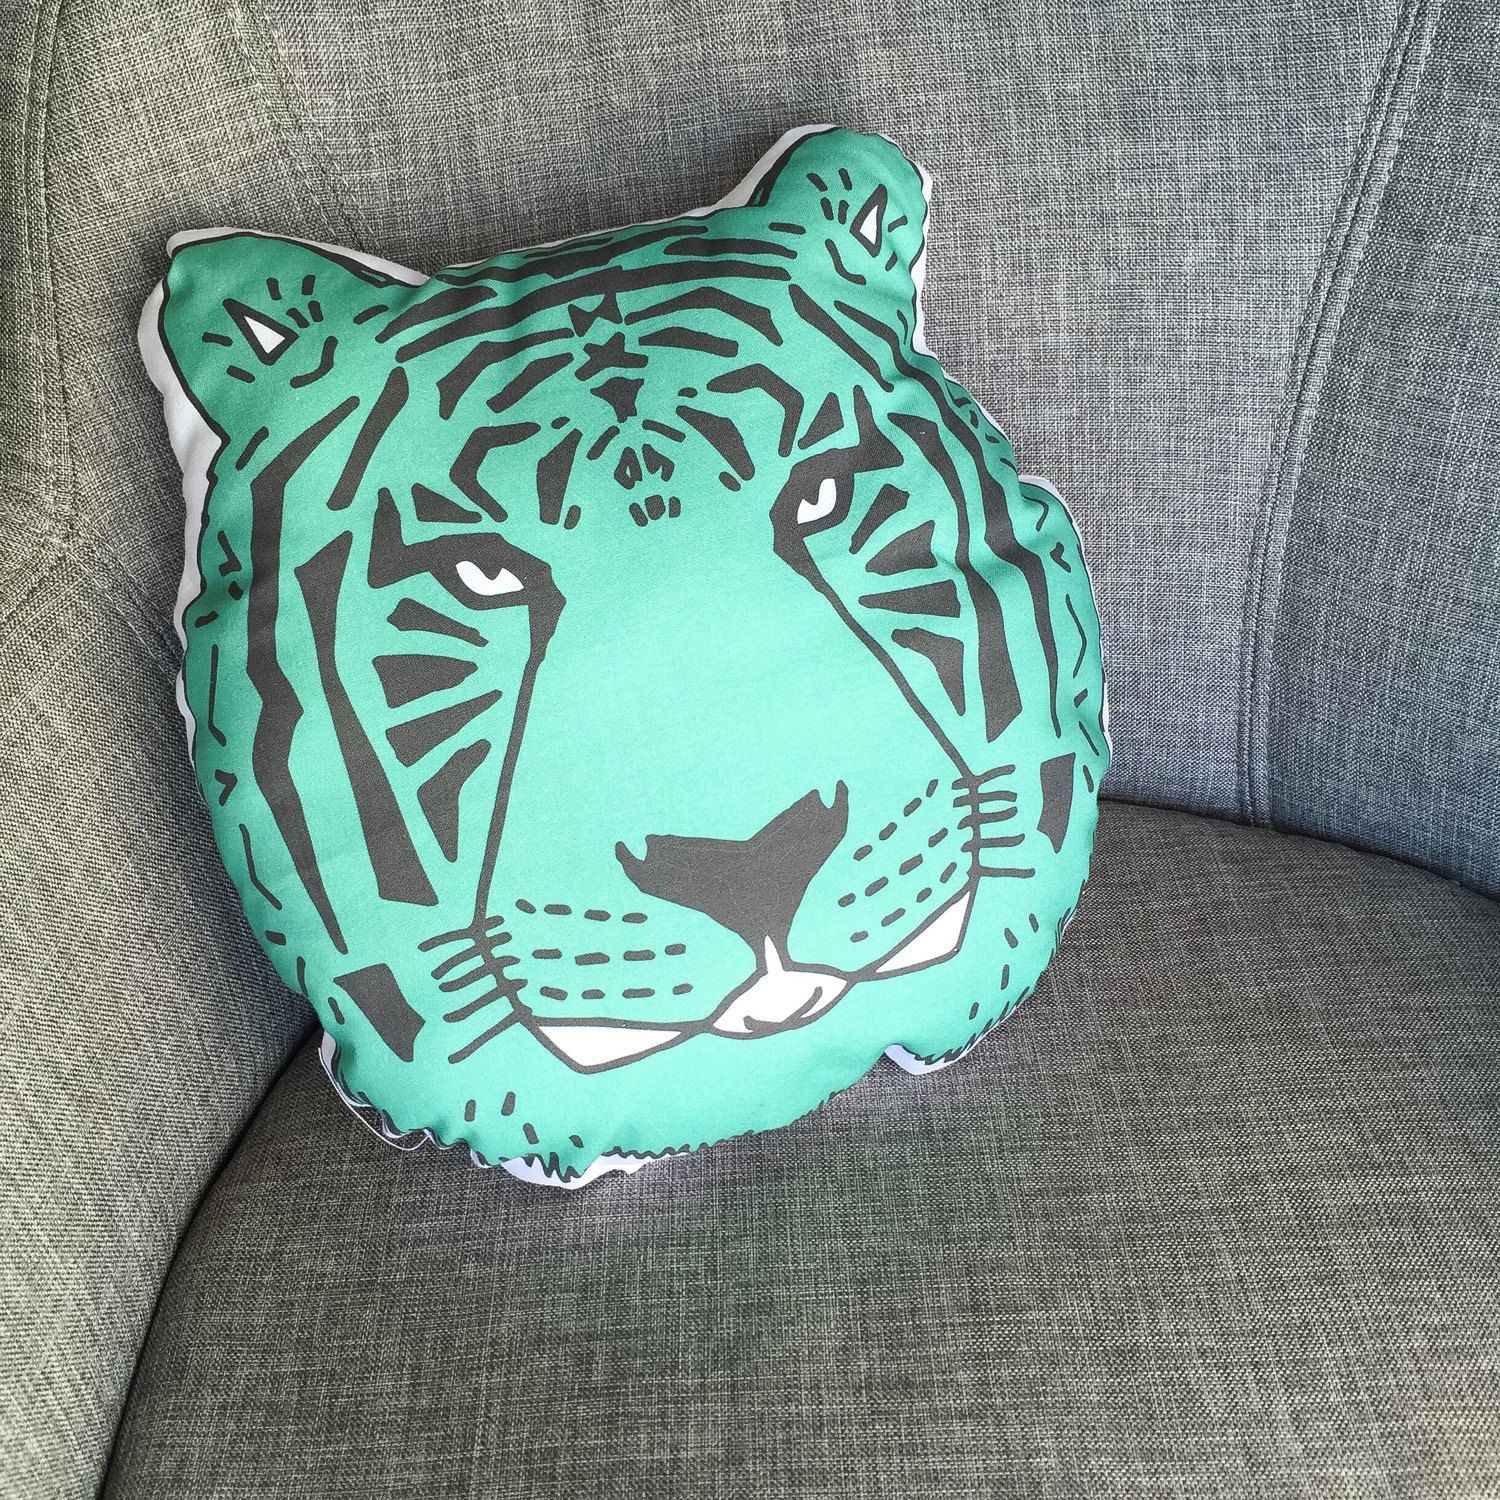 Our super fun and cool jade tiger pillow! Perfect for modern nurseries, modern kid rooms, and even for grownup decor. By ModFox on Etsy